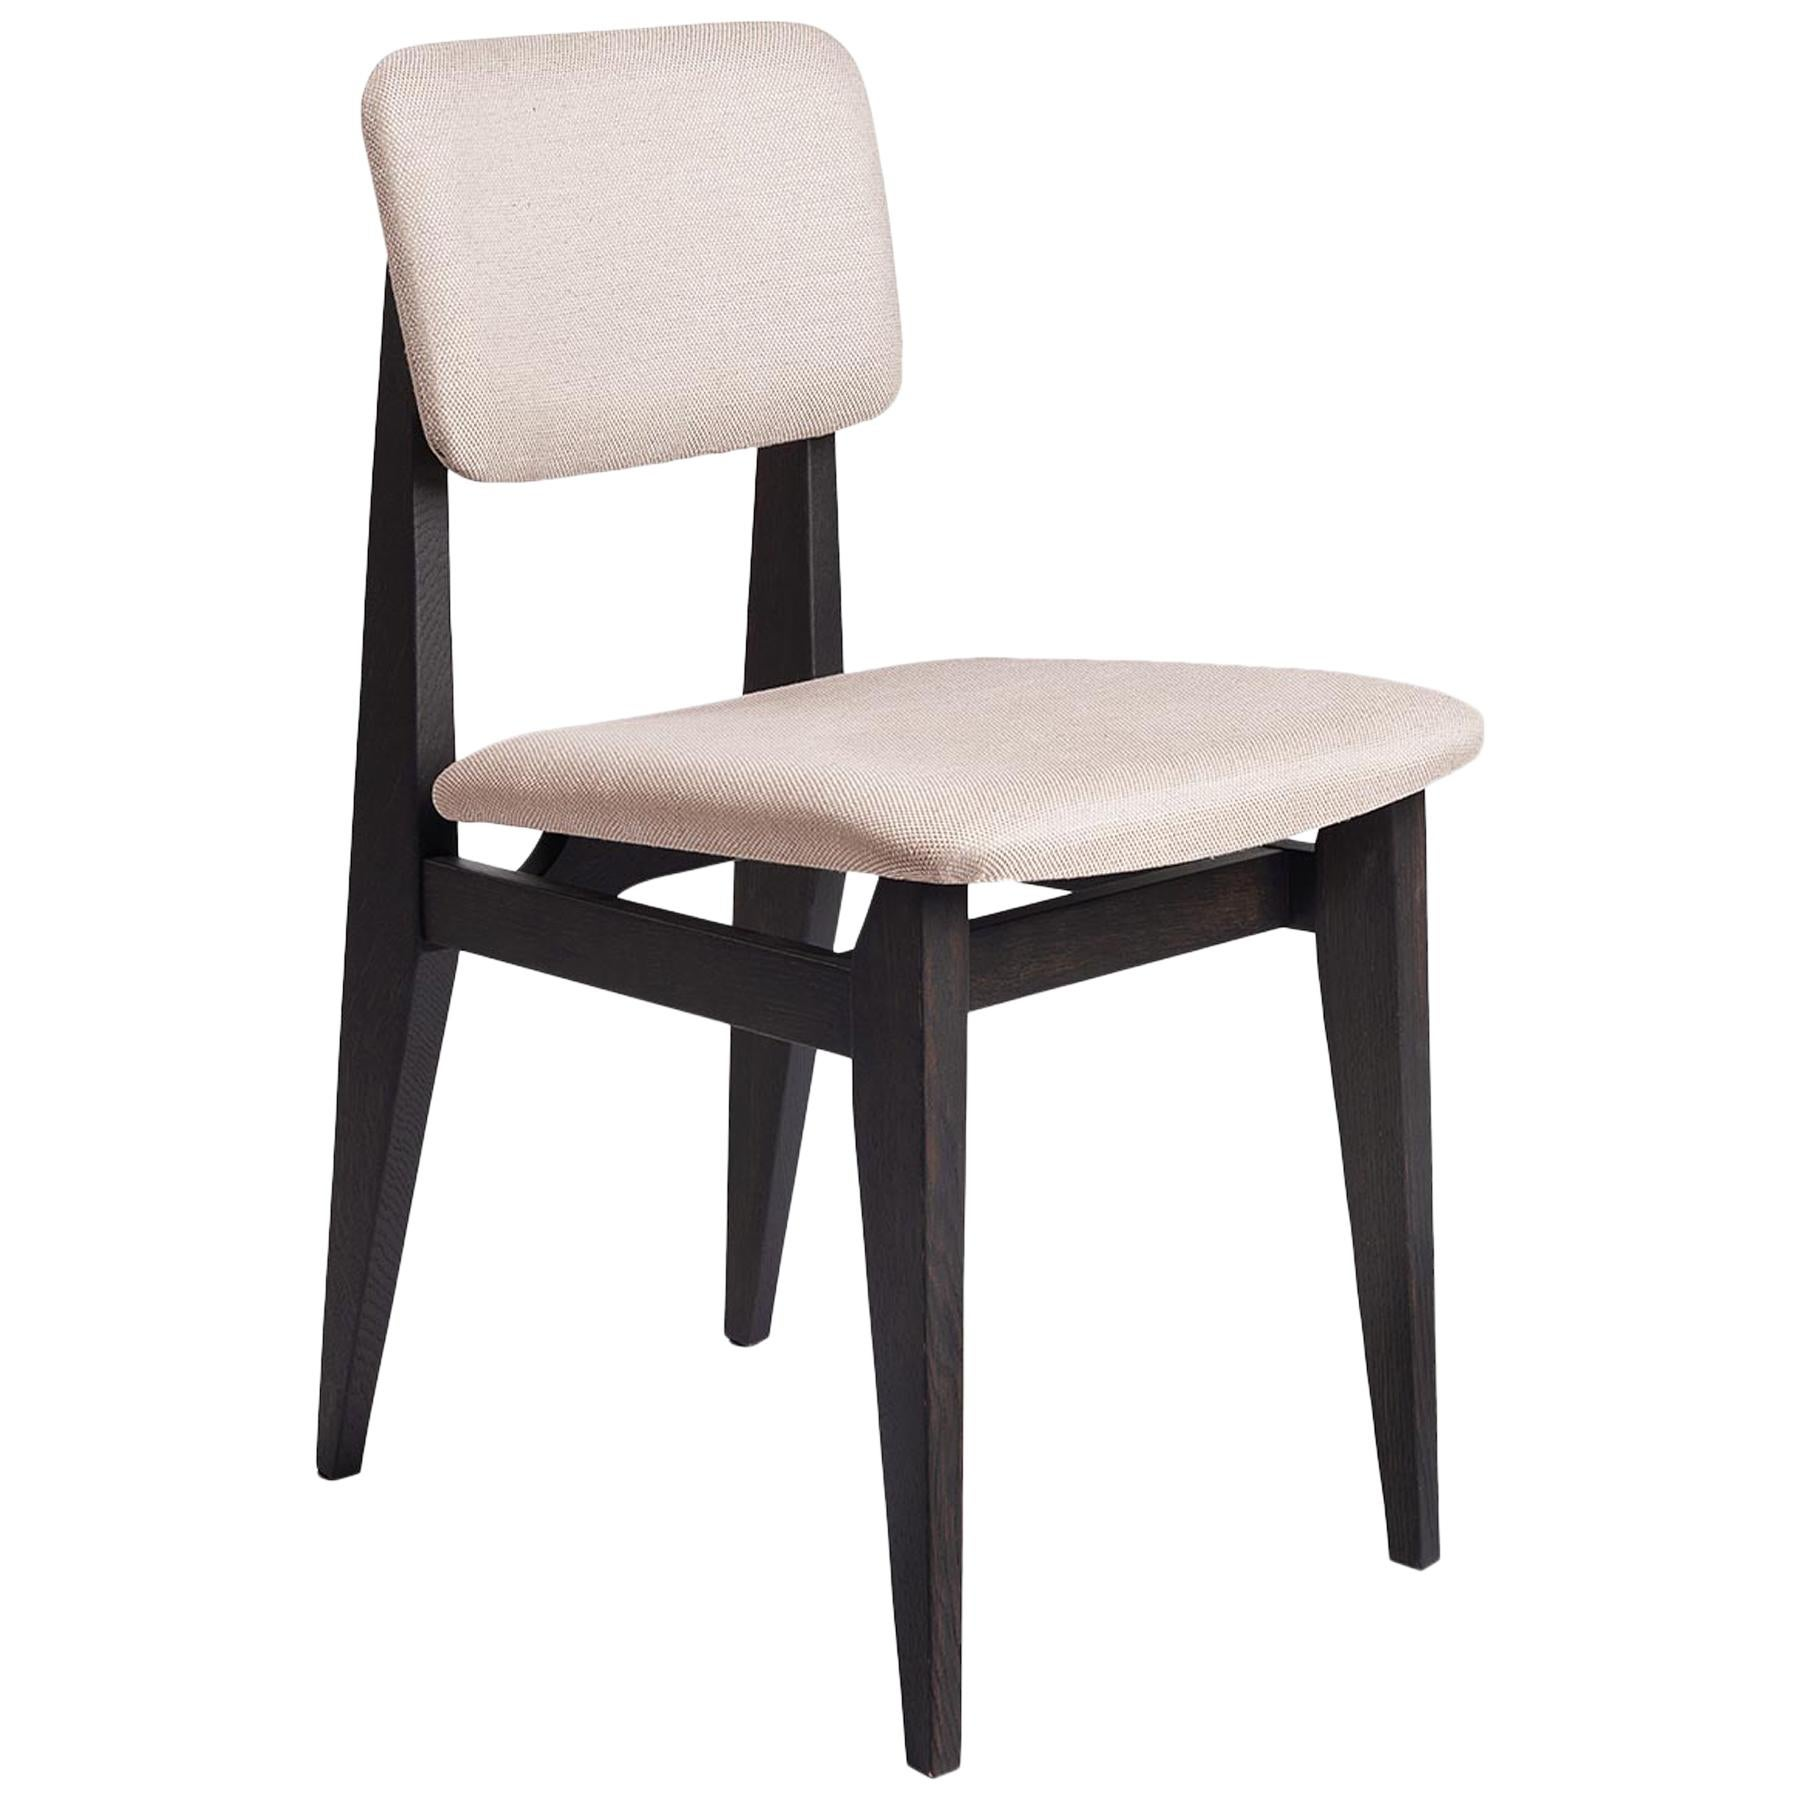 C Chair Dining Chair, Fully Upholstered, Brown Stained Oak